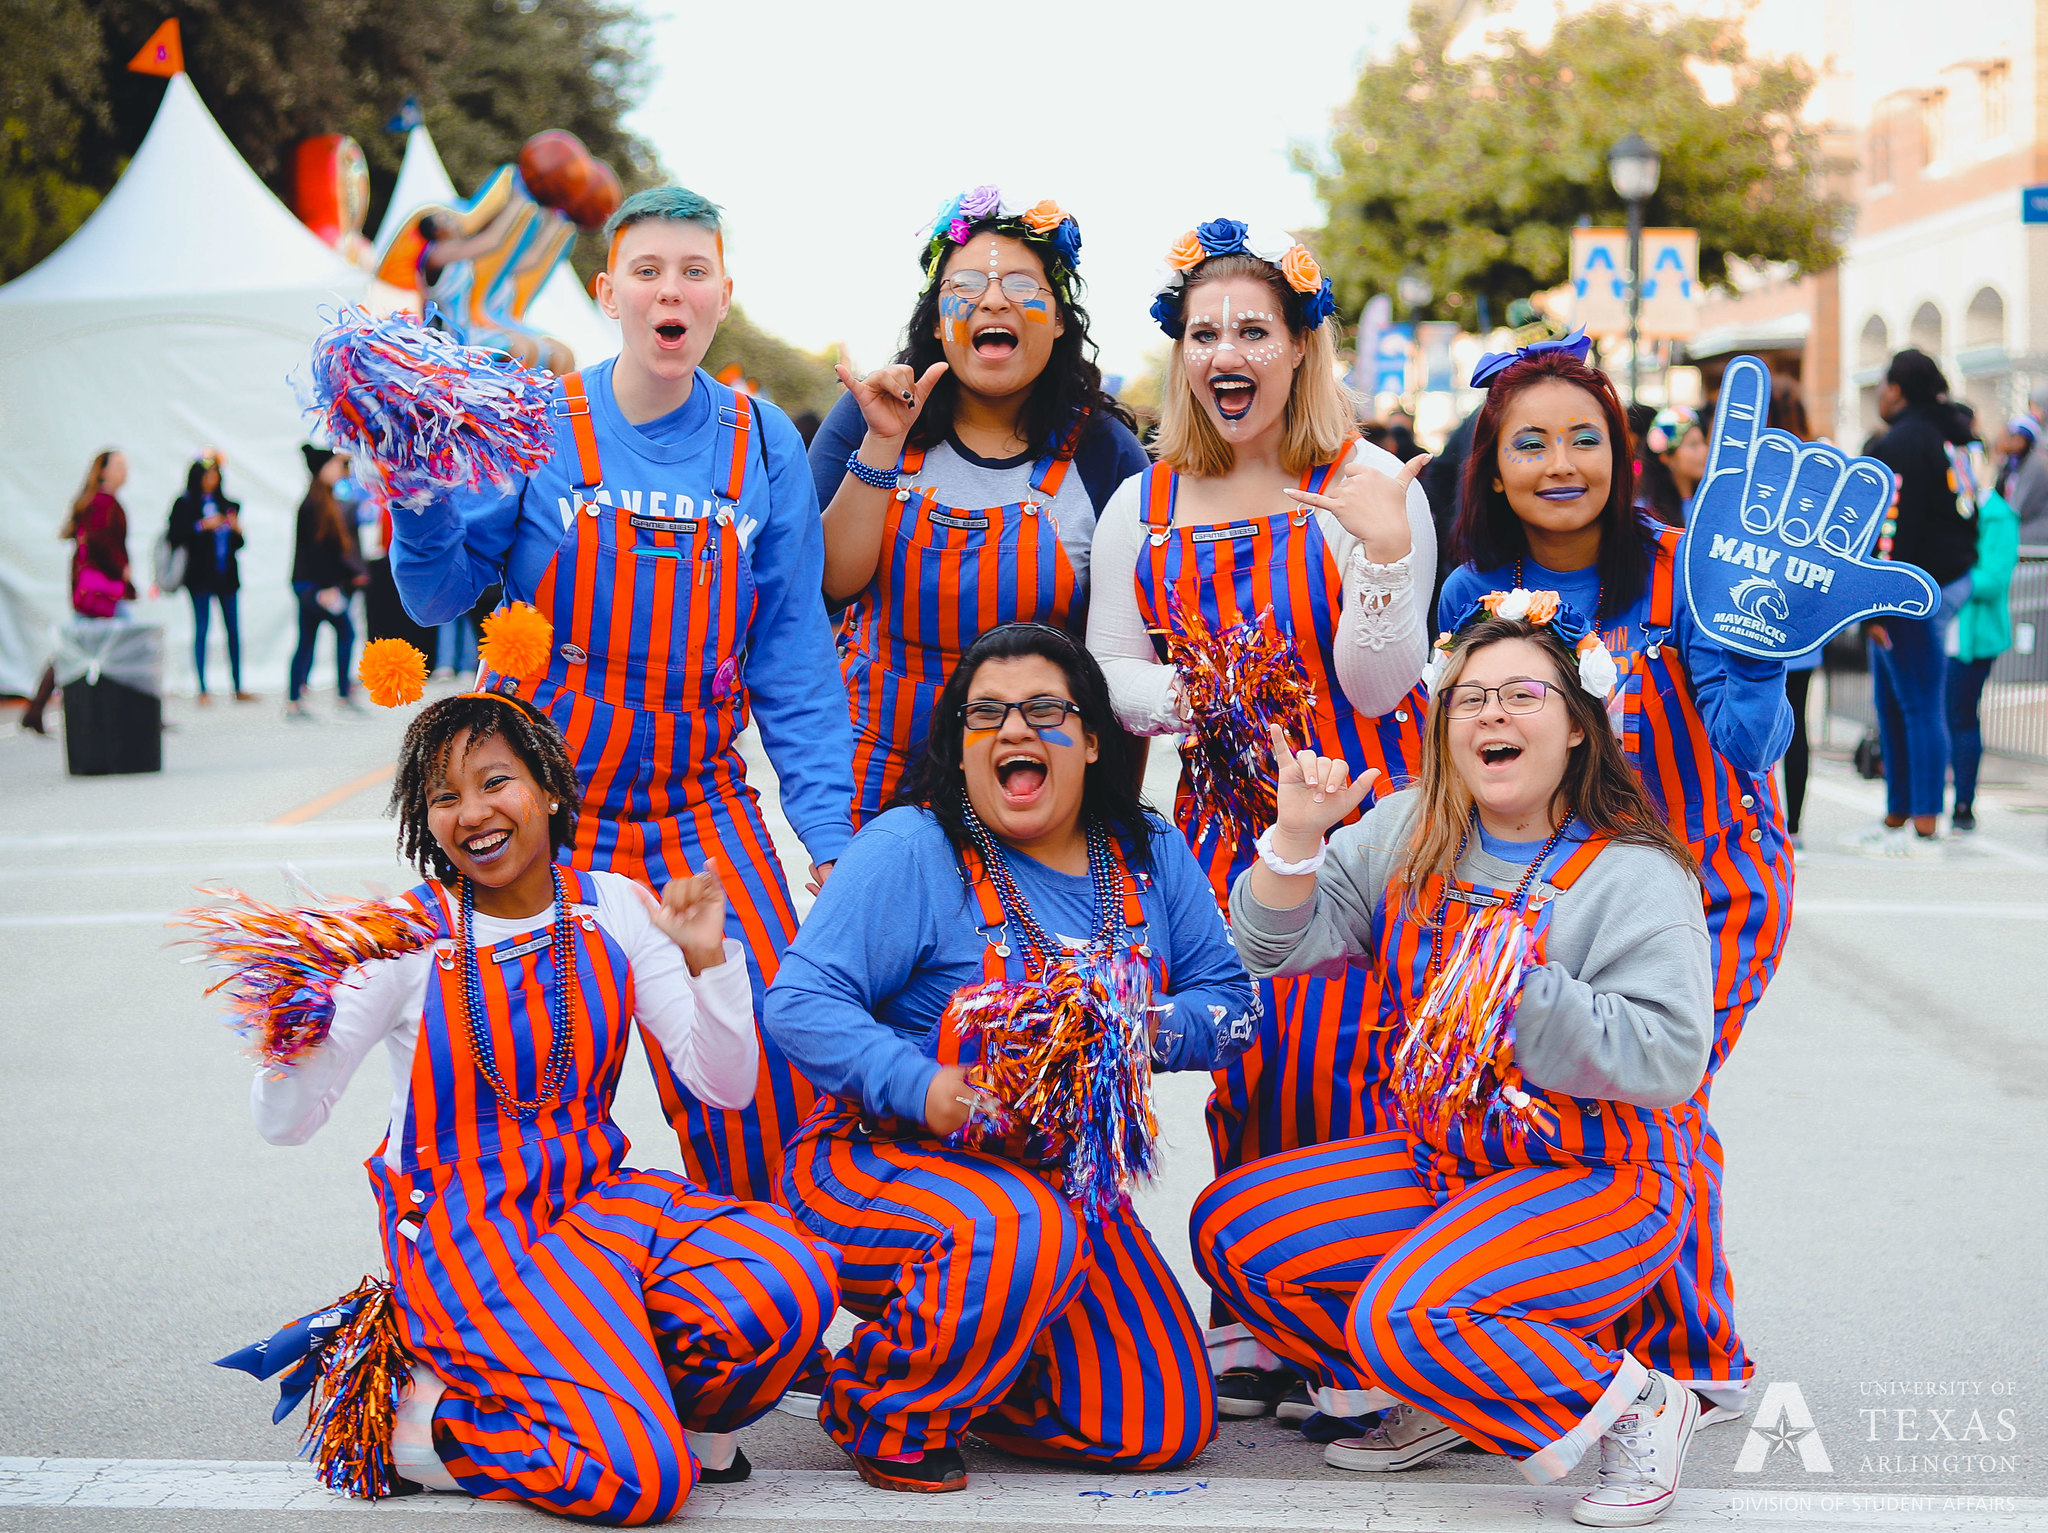 UTA wranglers, a student spirit group, pose for a picture at UTA